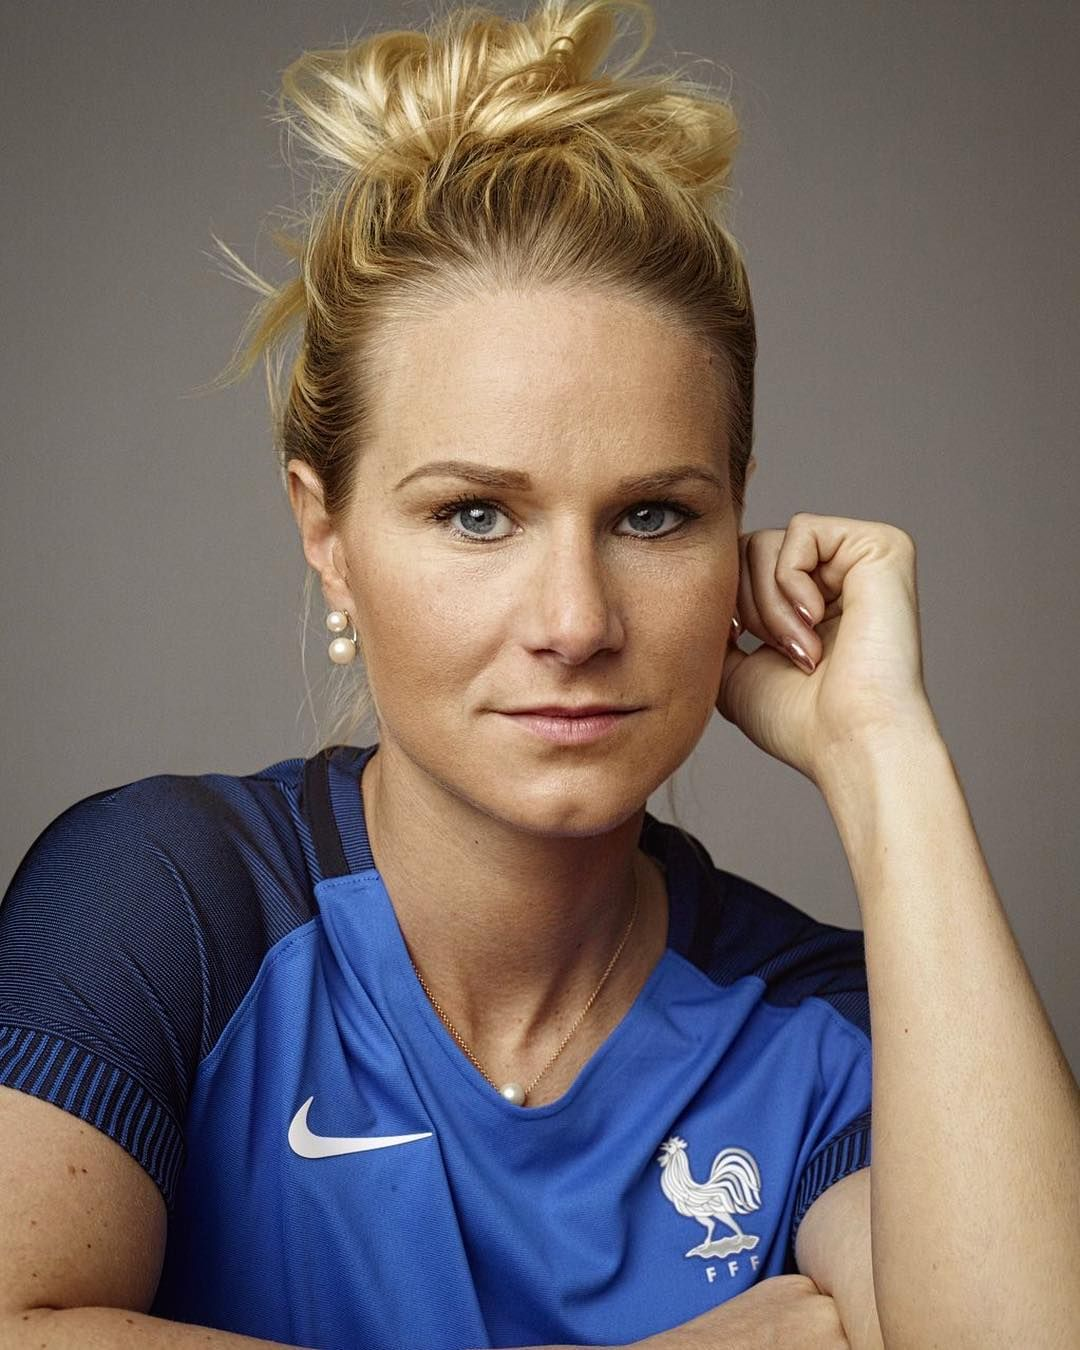 The 29-year old daughter of father (?) and mother(?) Amandine Henry in 2019 photo. Amandine Henry earned a 0.5 million dollar salary - leaving the net worth at  million in 2019